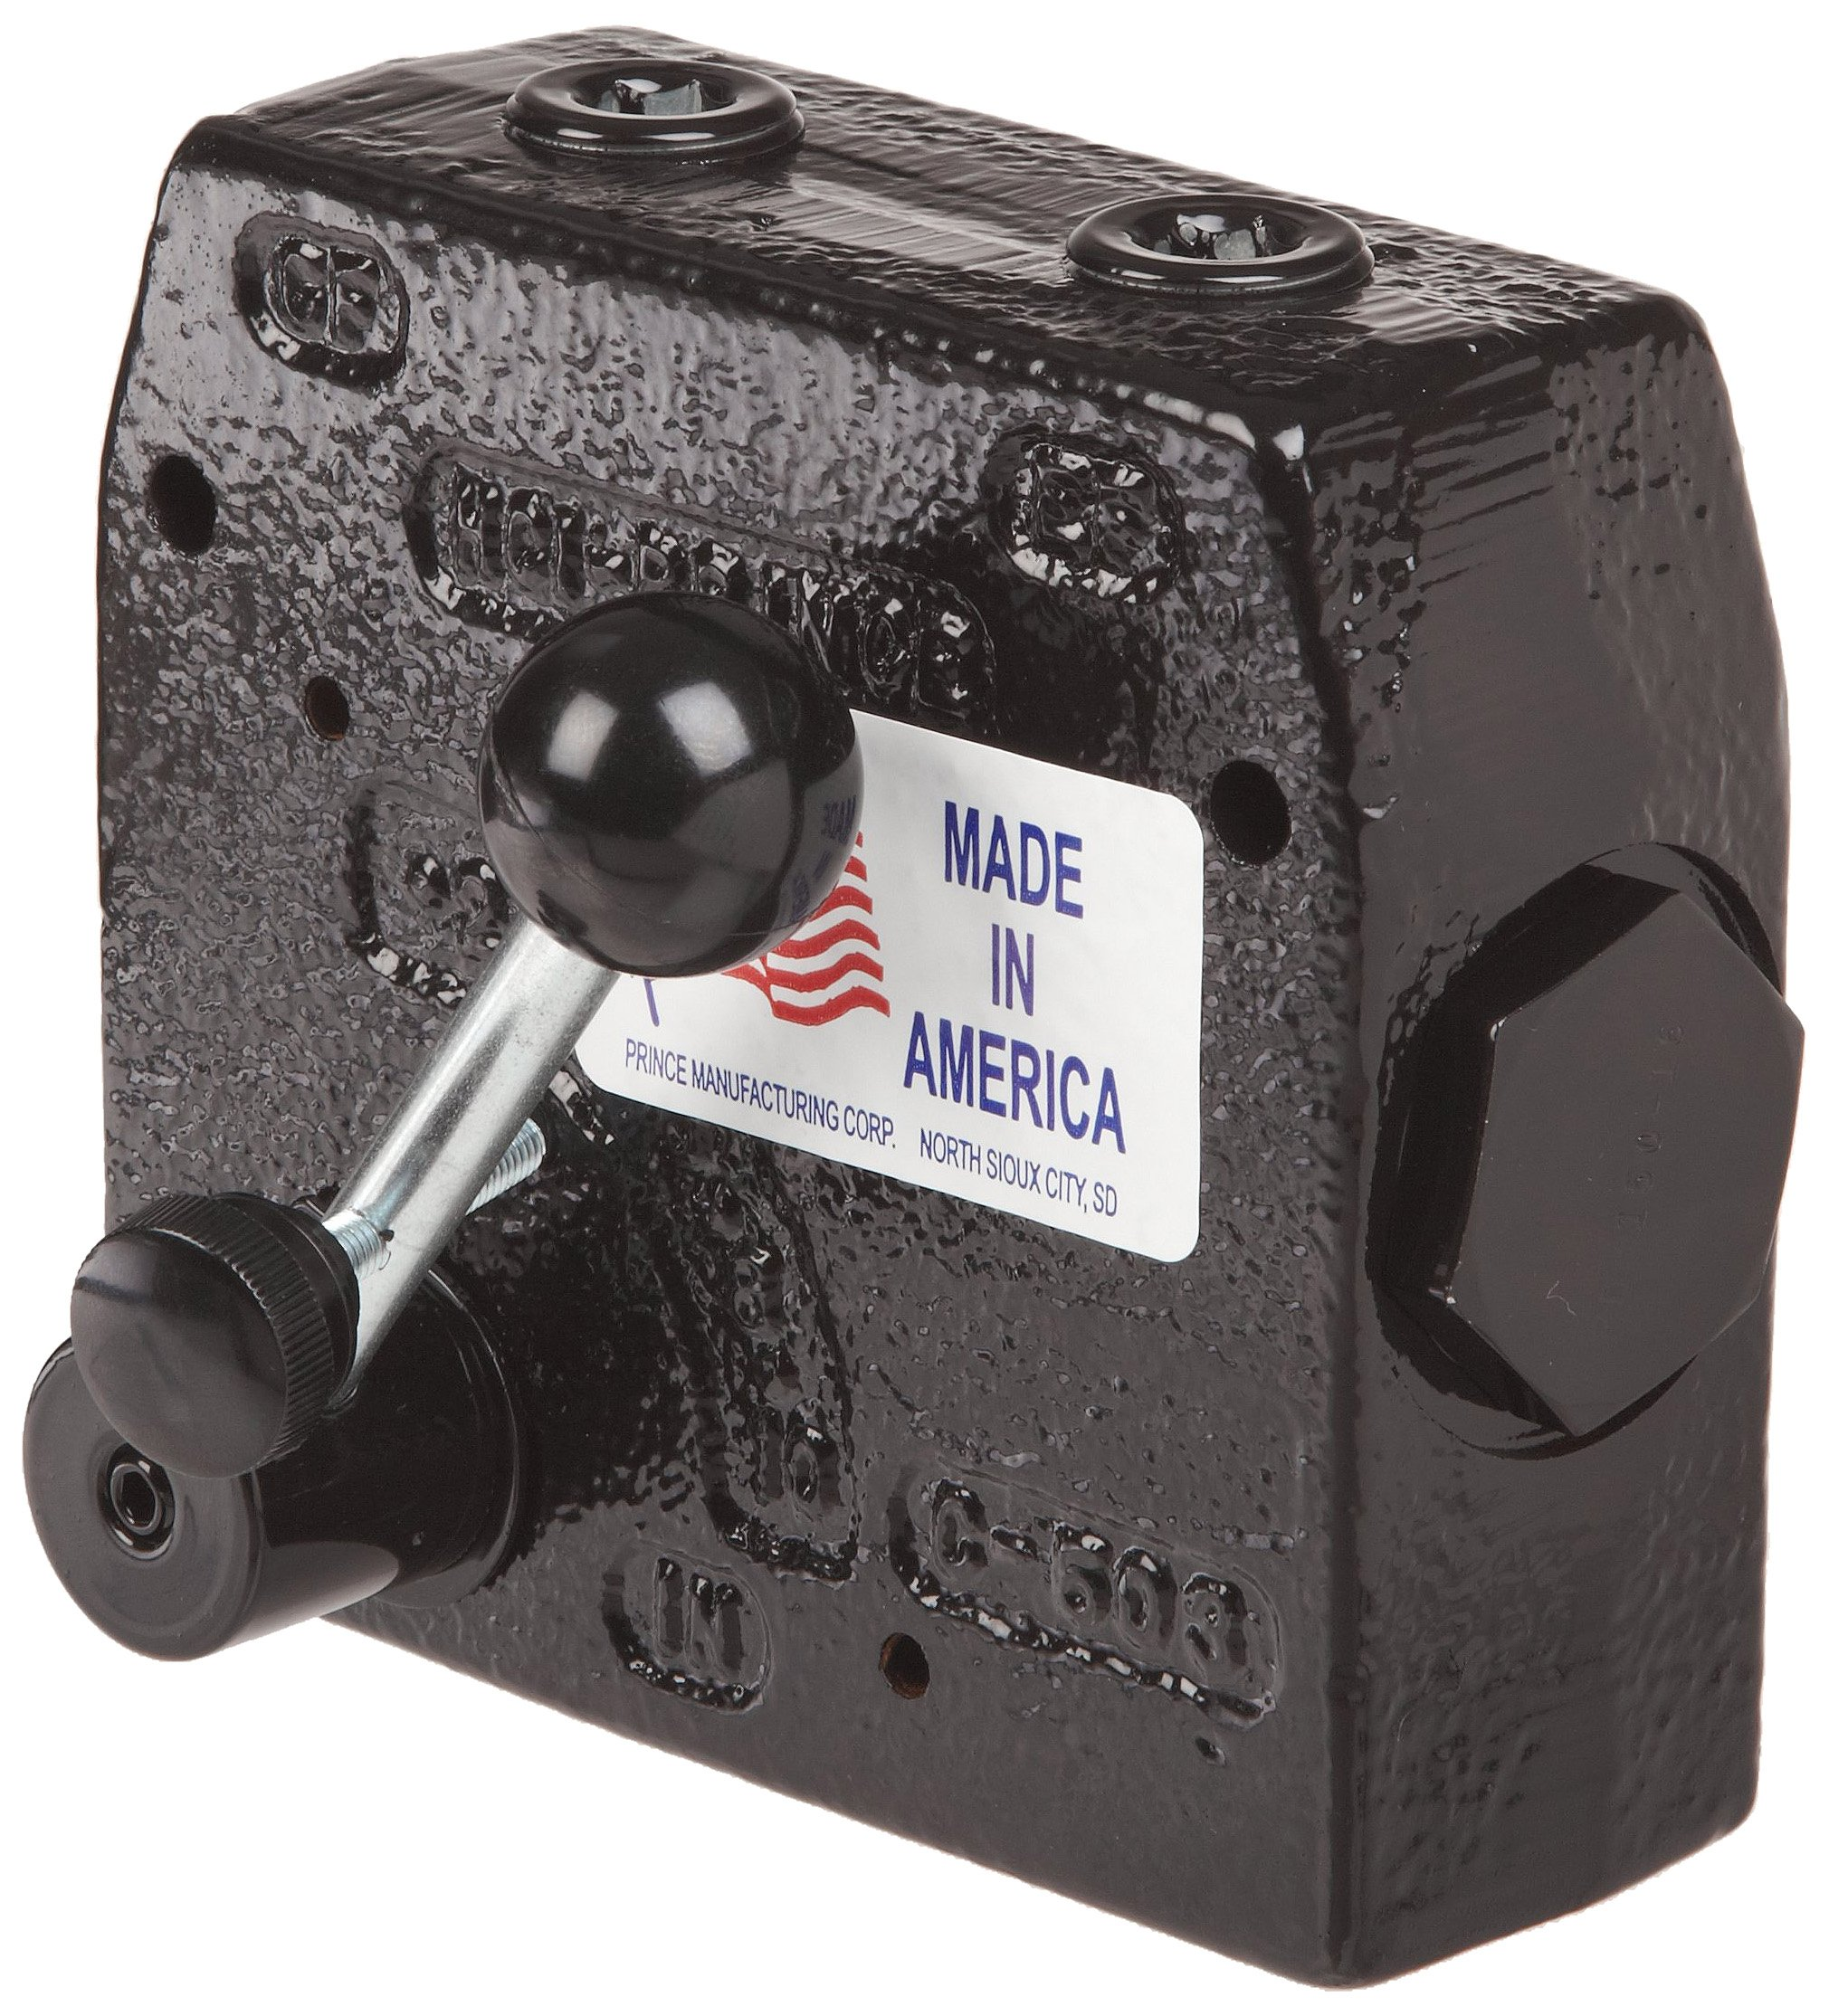 Prince RD-150-16 Flow Control Valve, Adjustable Pressure Relief, Cast Iron, 3000 psi, 0-16 gpm, 1/2'' NPTF